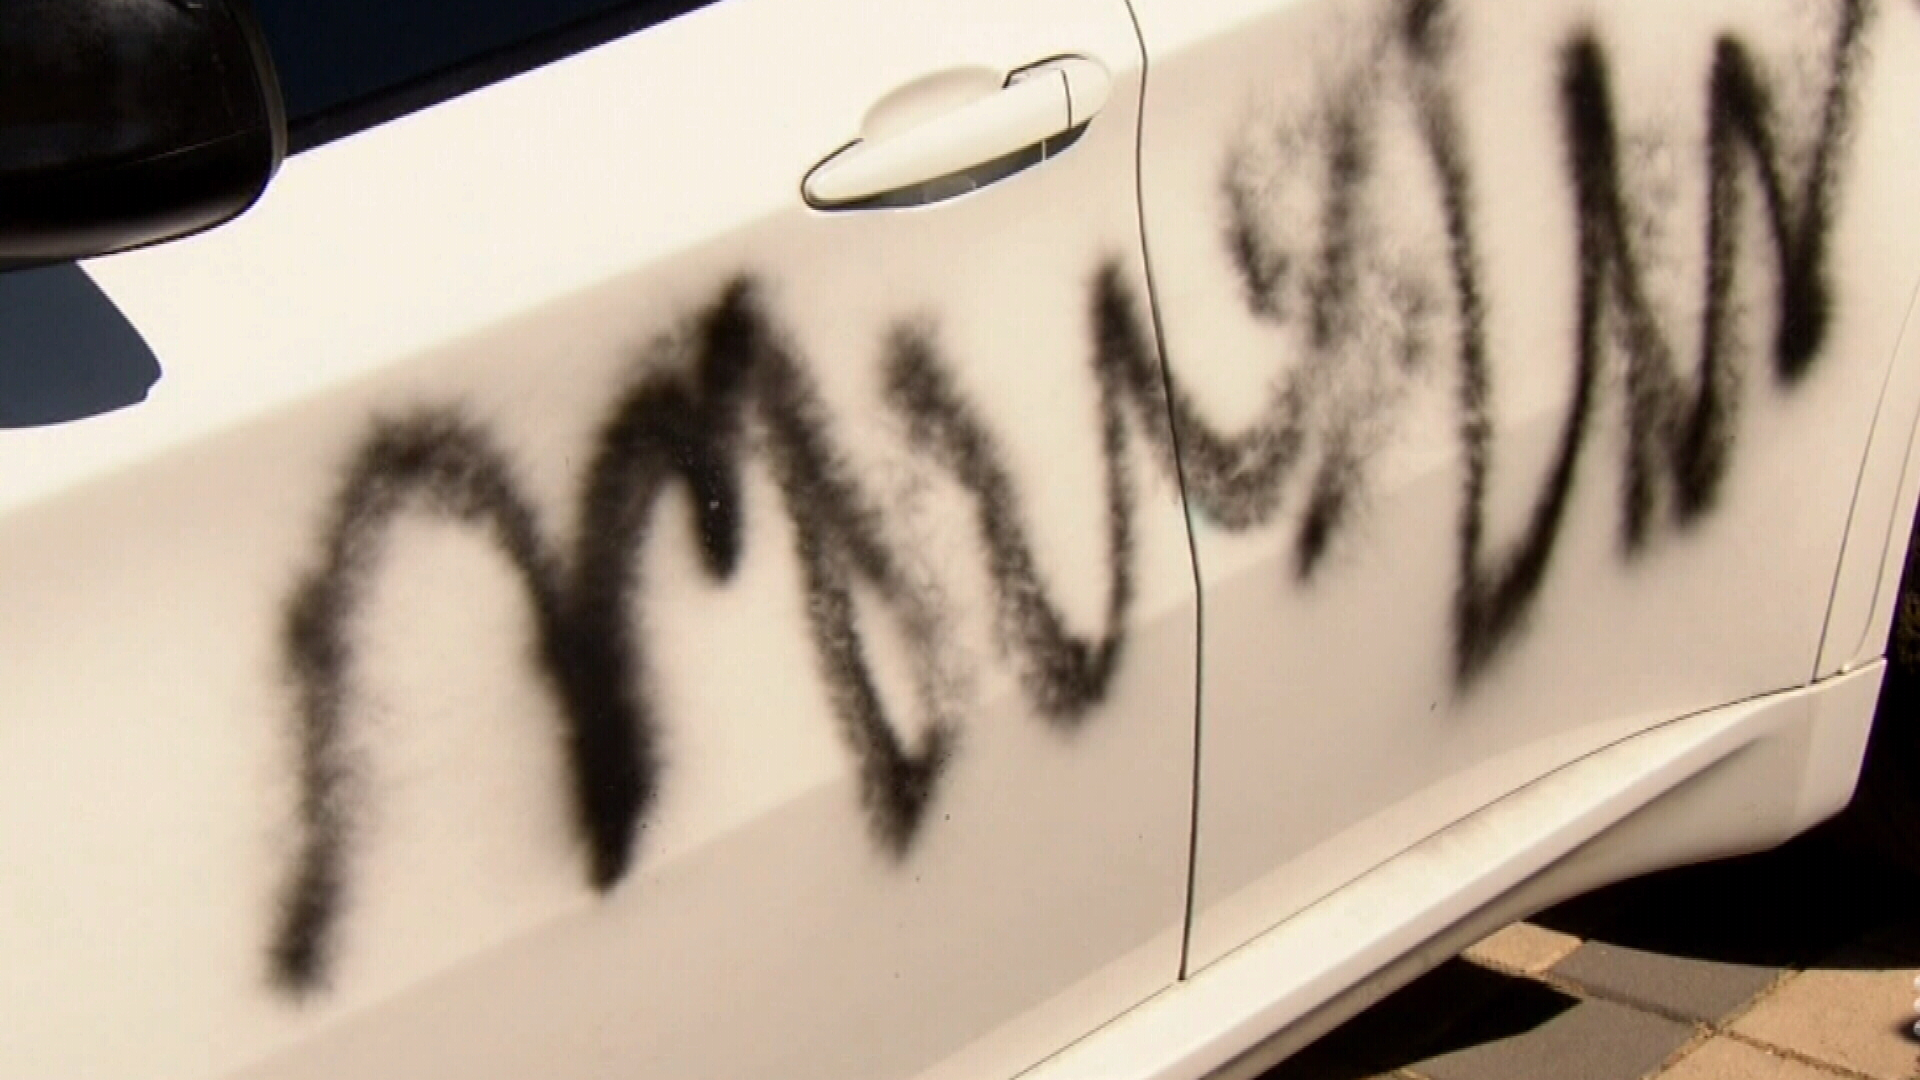 Perth Muslim family targeted by hate crime